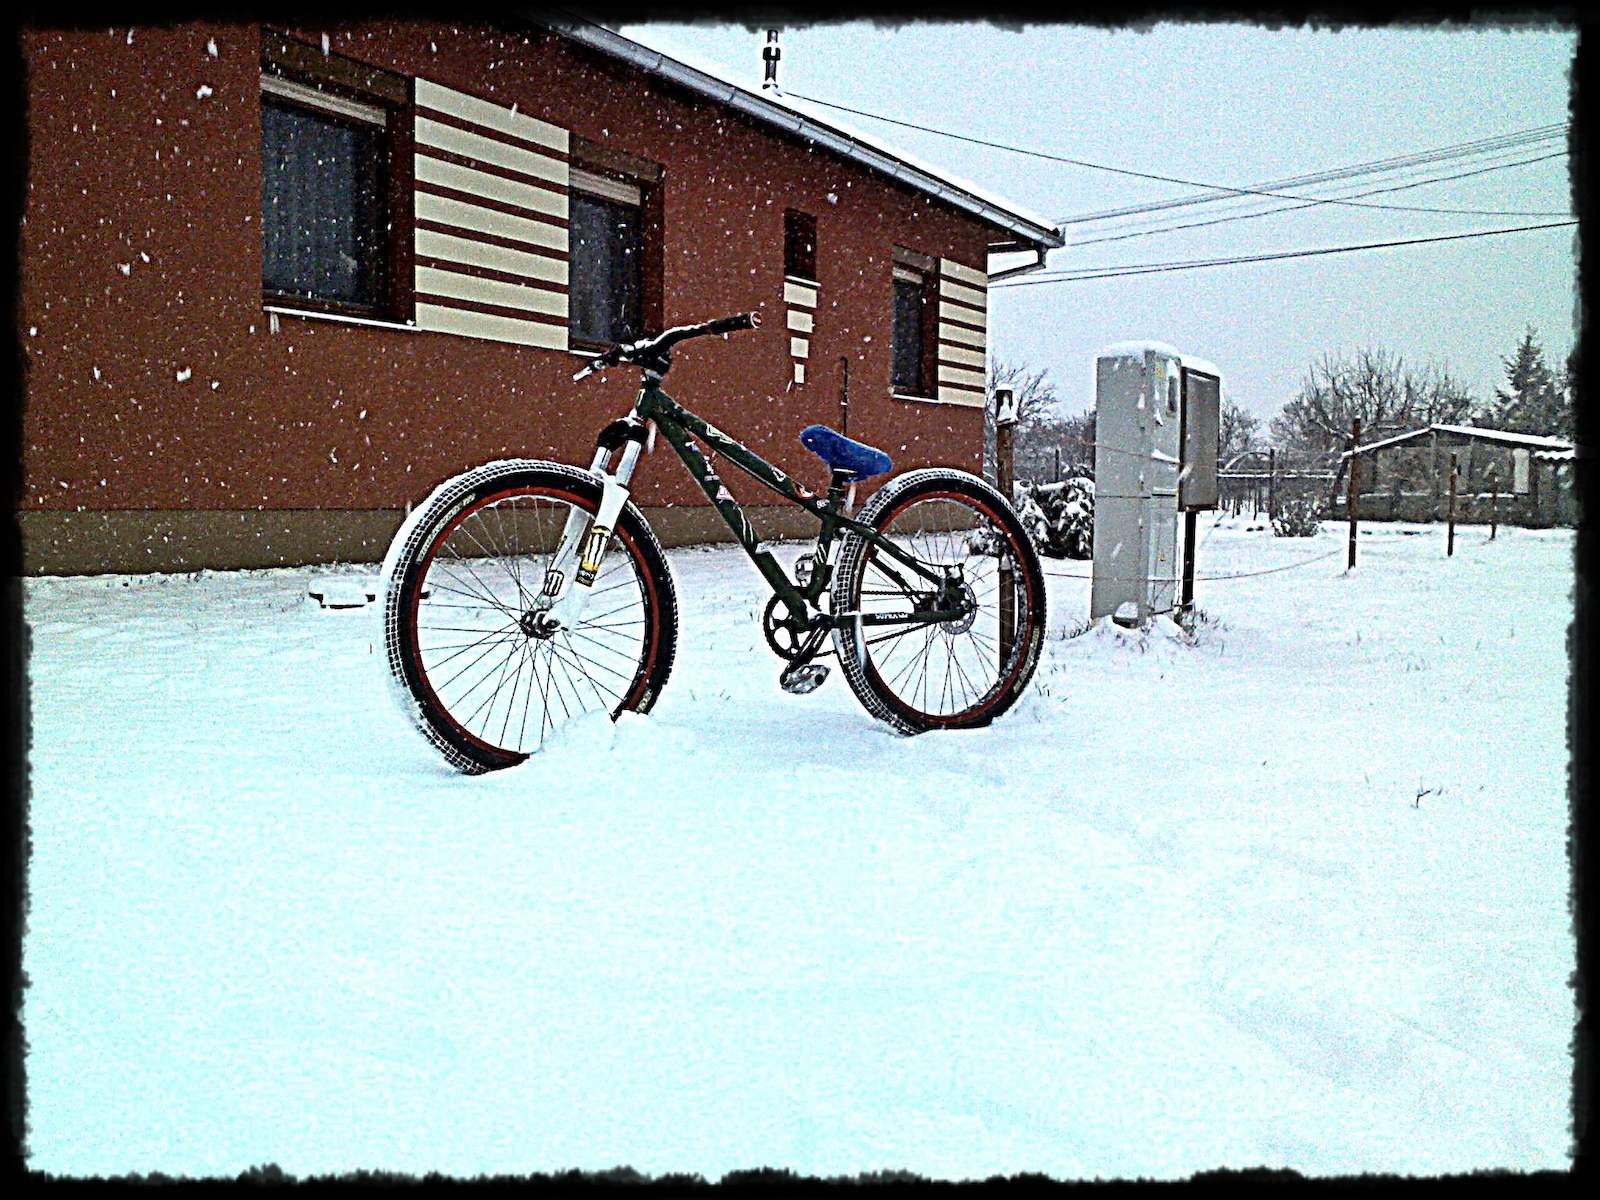 biking in the snow. :D szanaszéjje bicozáss a havban :3 :D